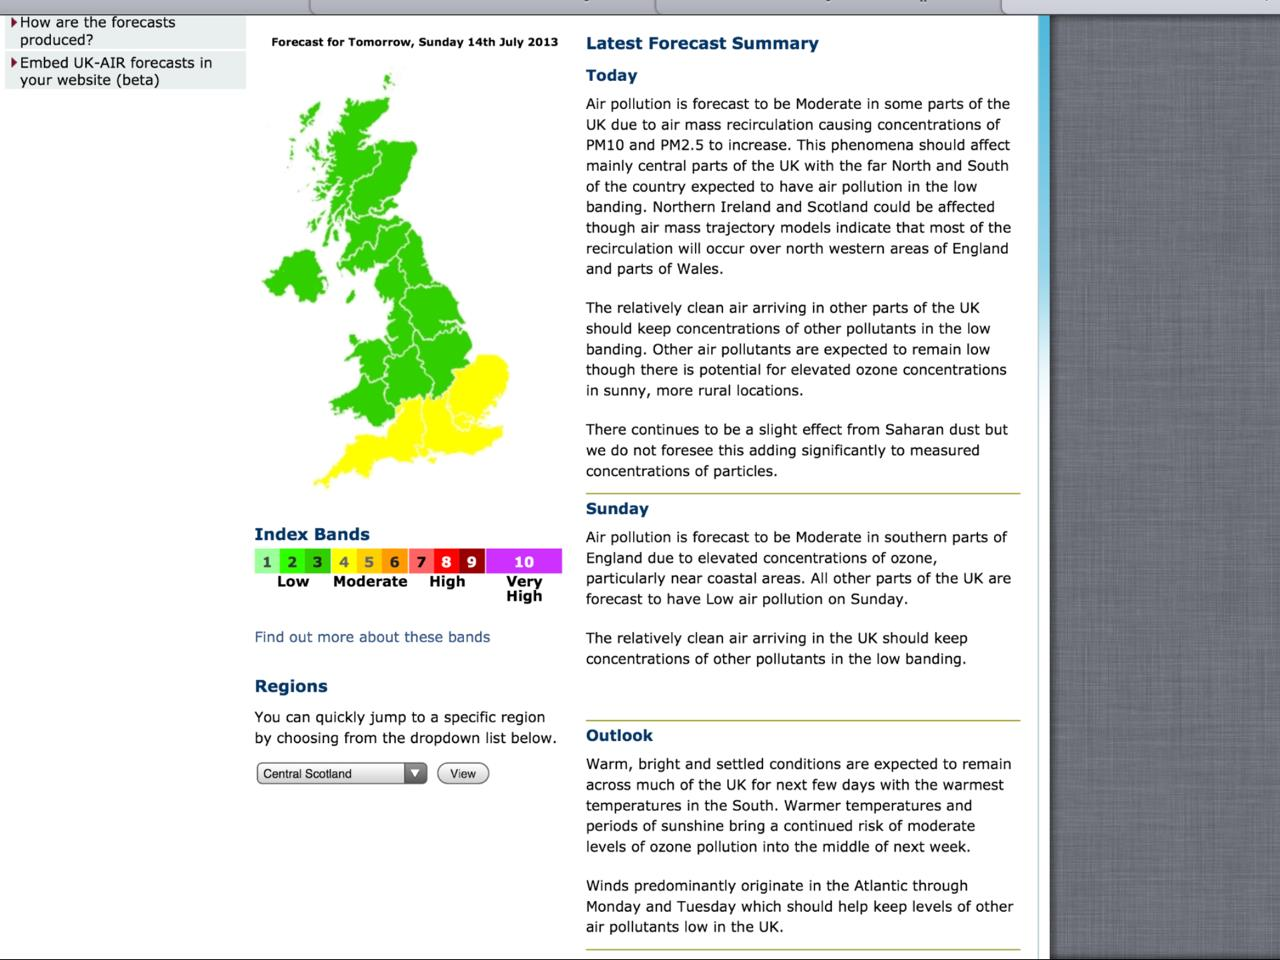 Exhibit 5 Defra forecast on Saturday 130713 for that day and Sunday 140713